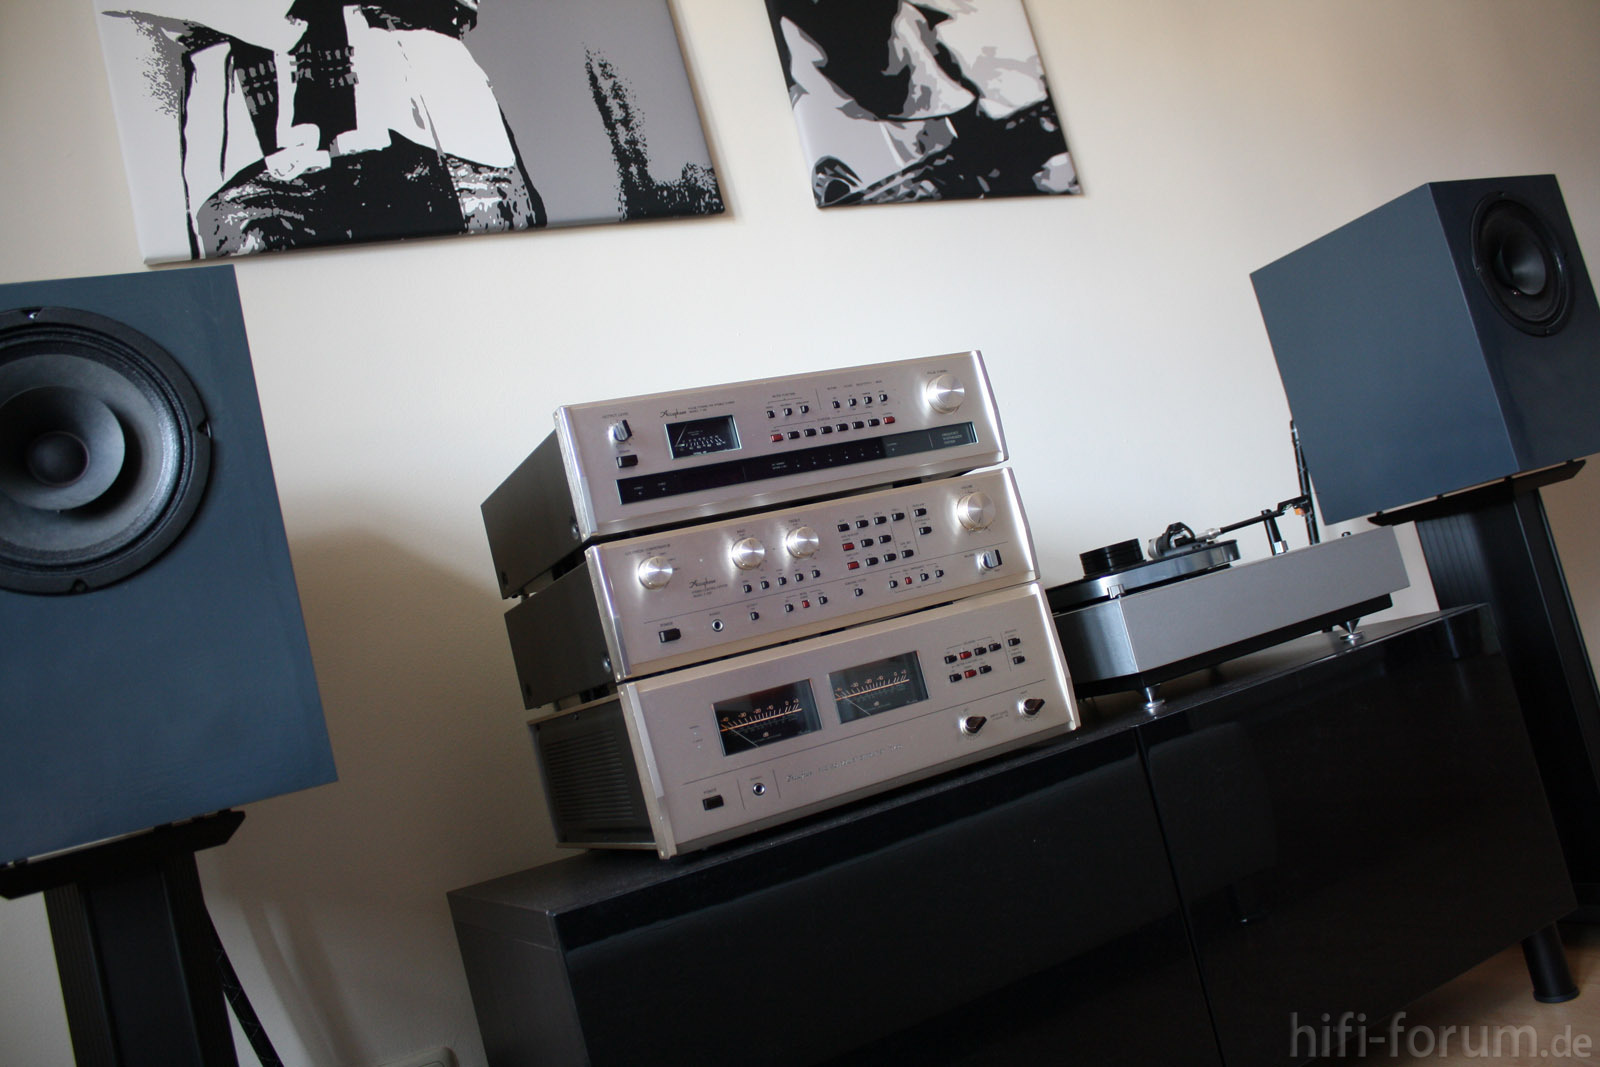 15 hifiklassiker stereo hifi bildergalerie. Black Bedroom Furniture Sets. Home Design Ideas